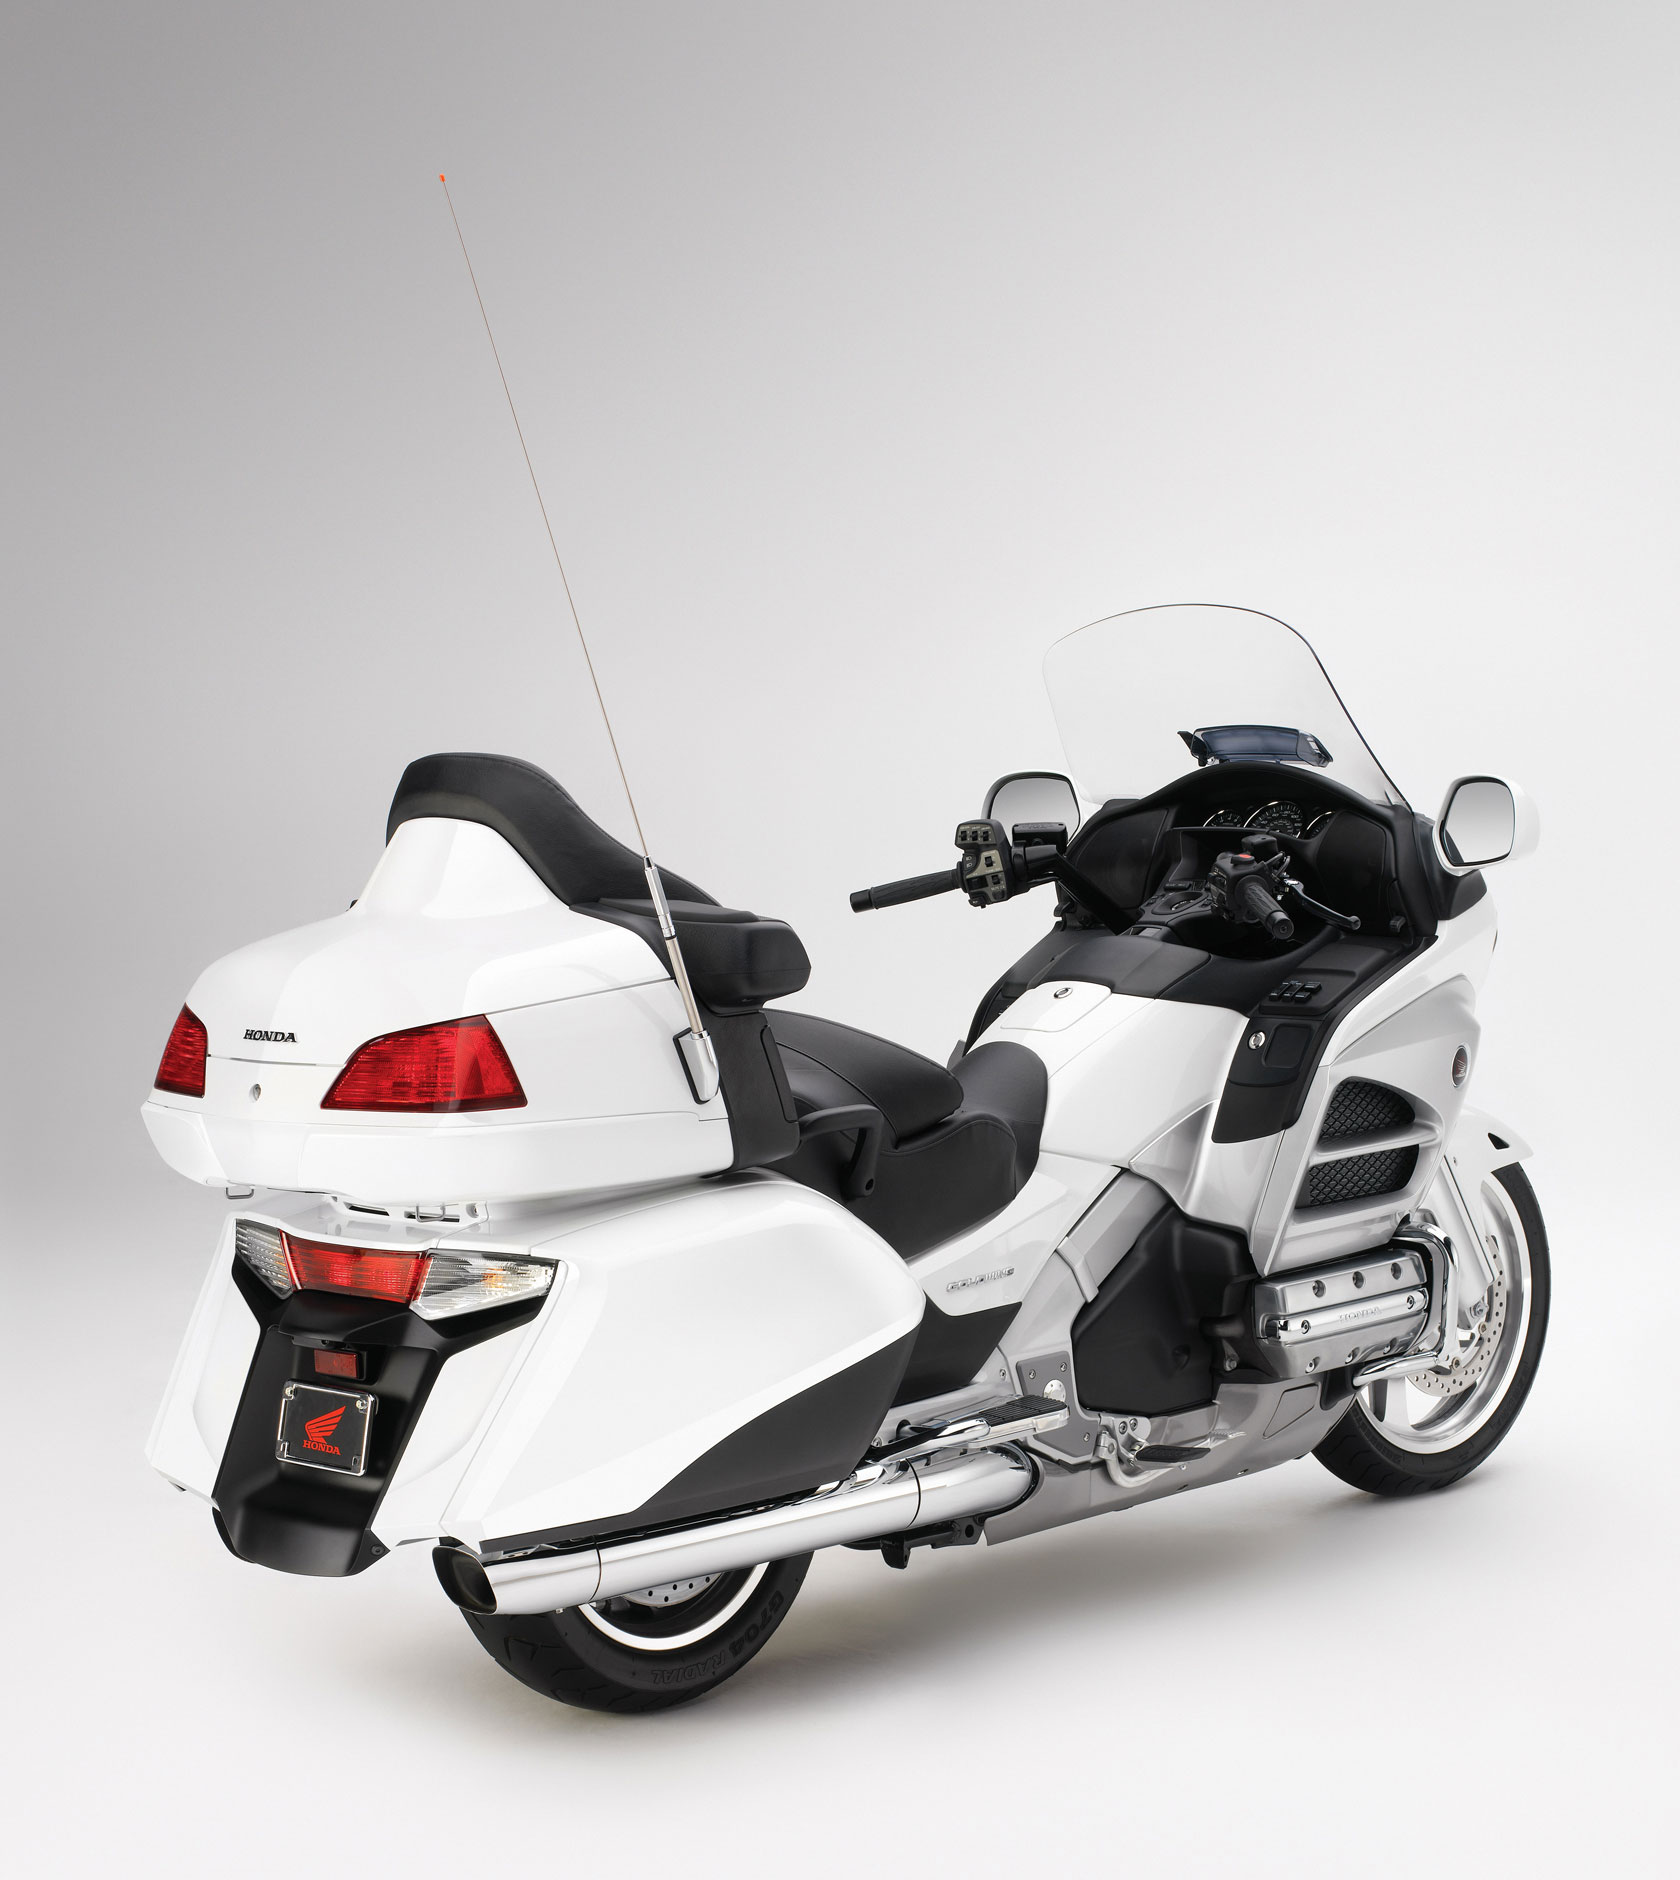 Honda GL 1800 Gold Wing 2004 images #82717